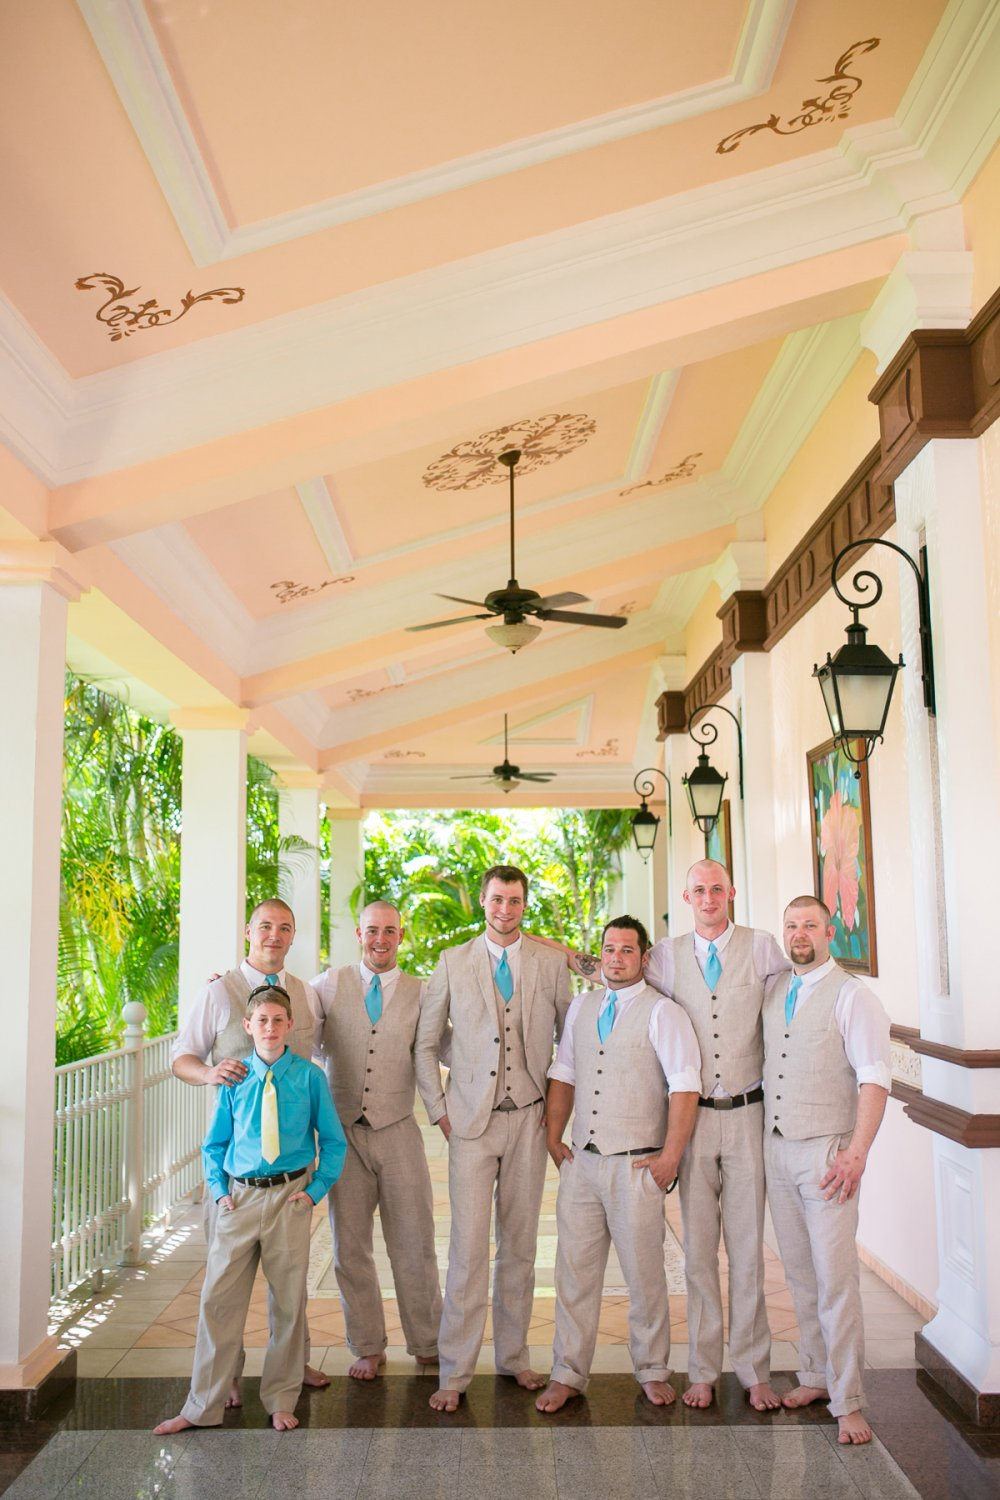 JF Hannigan Wedding Photography: Kat and Dan: a jamaican getaway 10